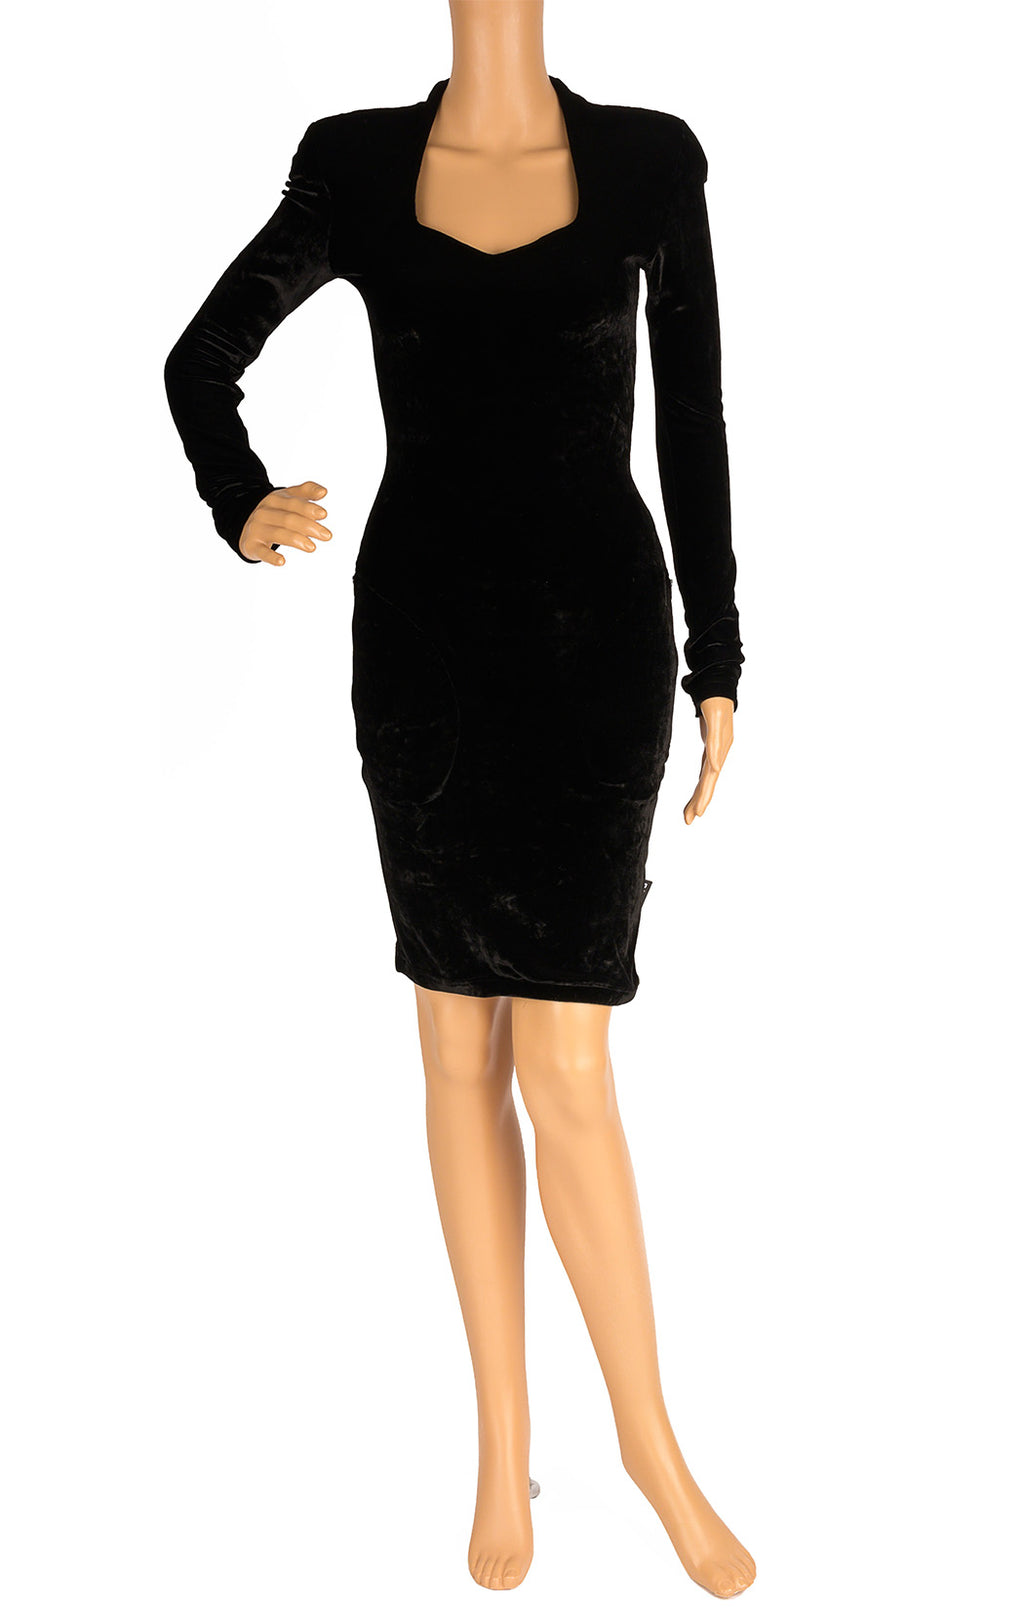 Front view of BALENCIAGA with tags Dress Size: FR 38 (comparable to US 4-6)